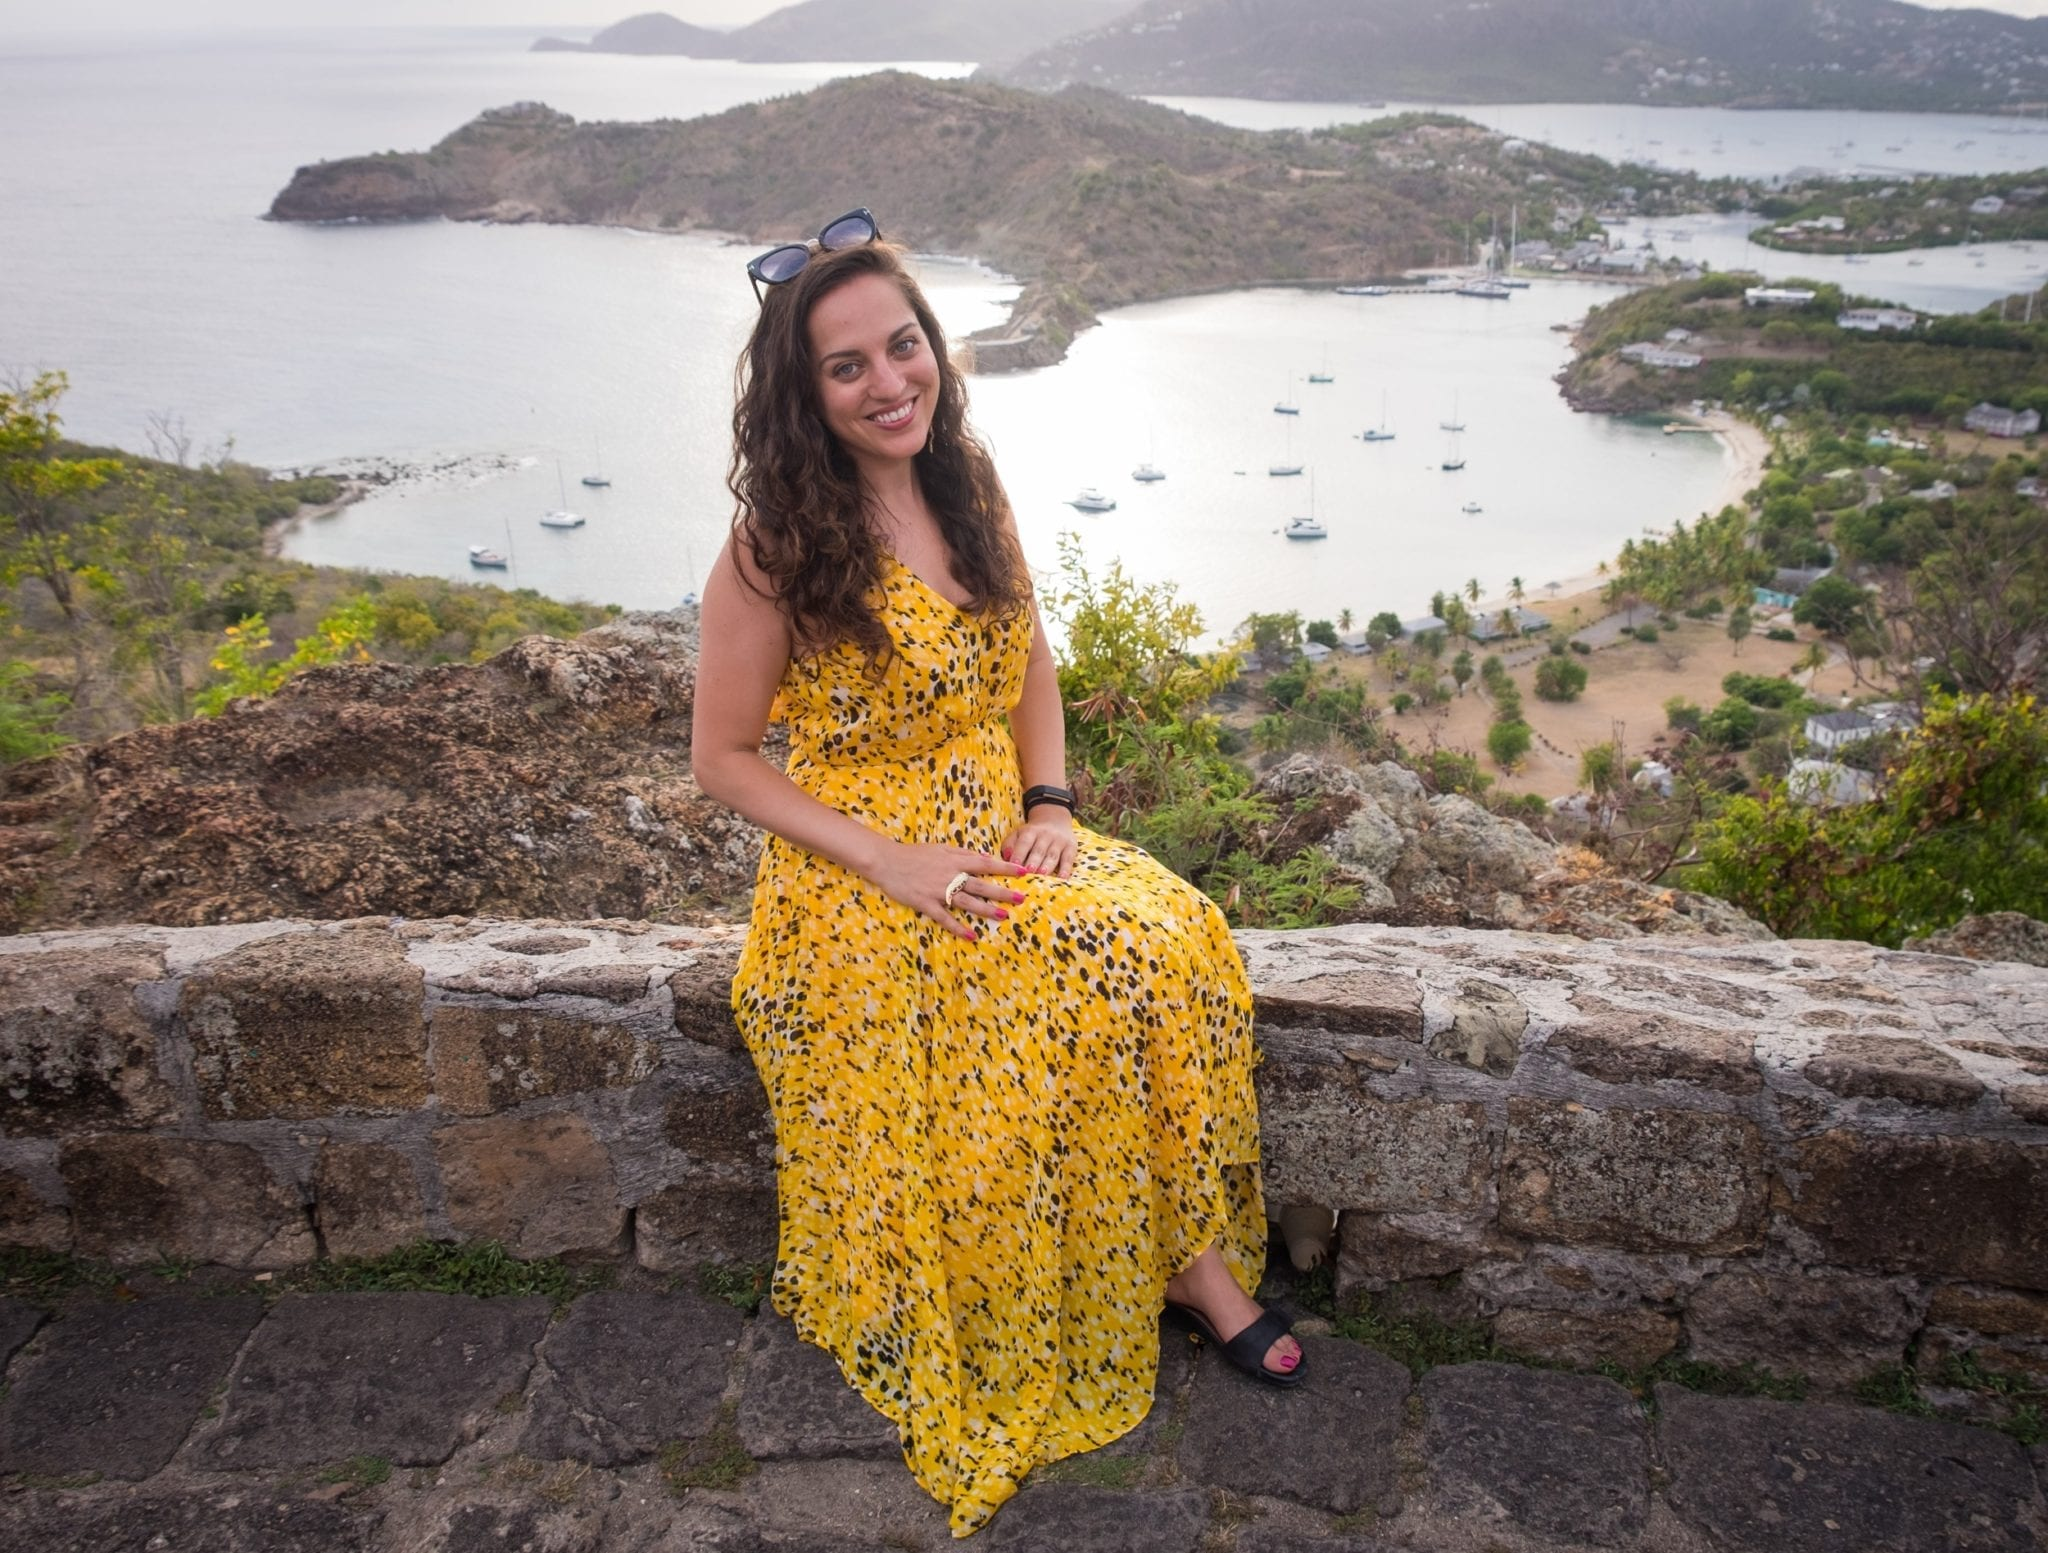 Kate sitting on a short wall in a long gauzy yellow and black gown. In the background is a view over the White Sea down below, and mountains in the distance.